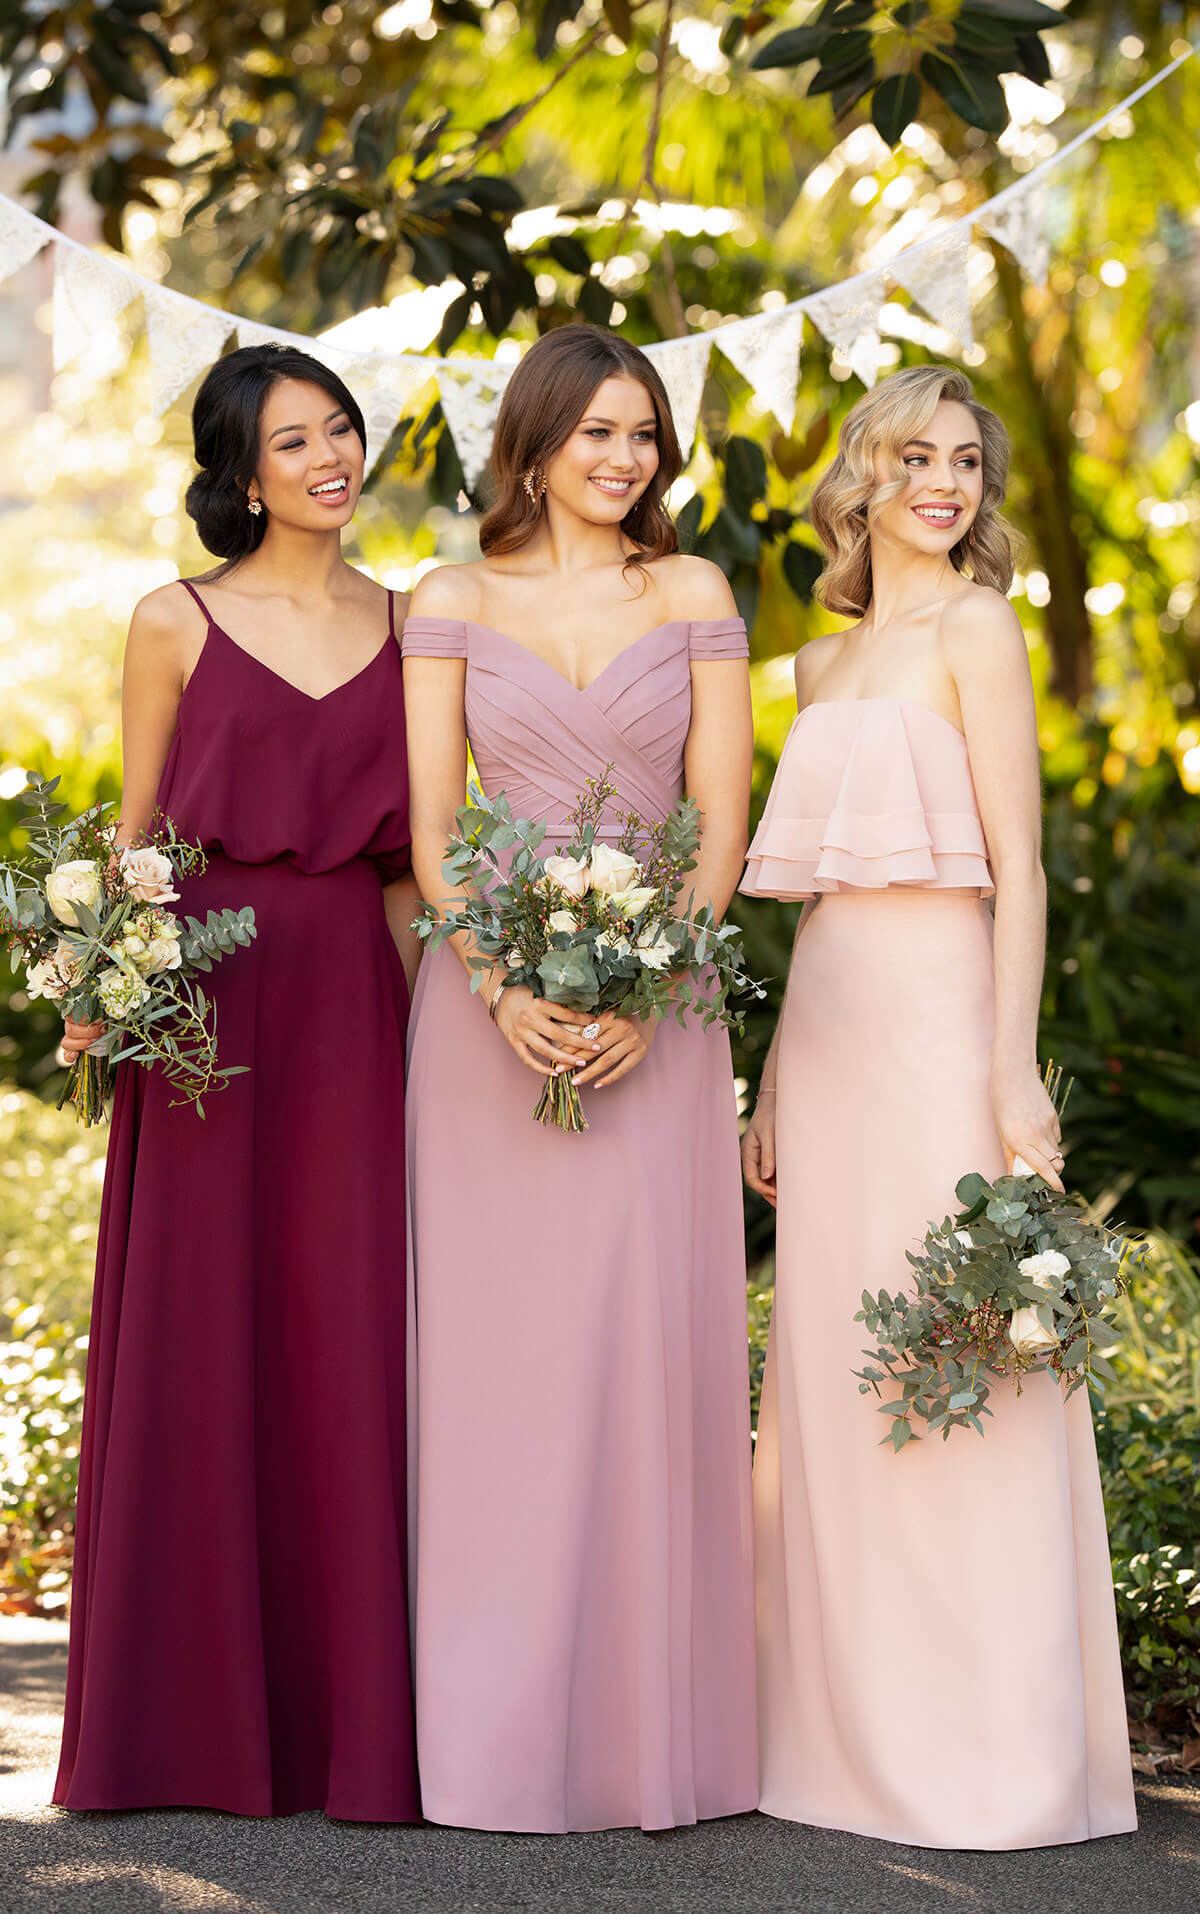 Sorella Vita Bridesmaids Dresses with a mix and match of shades of red